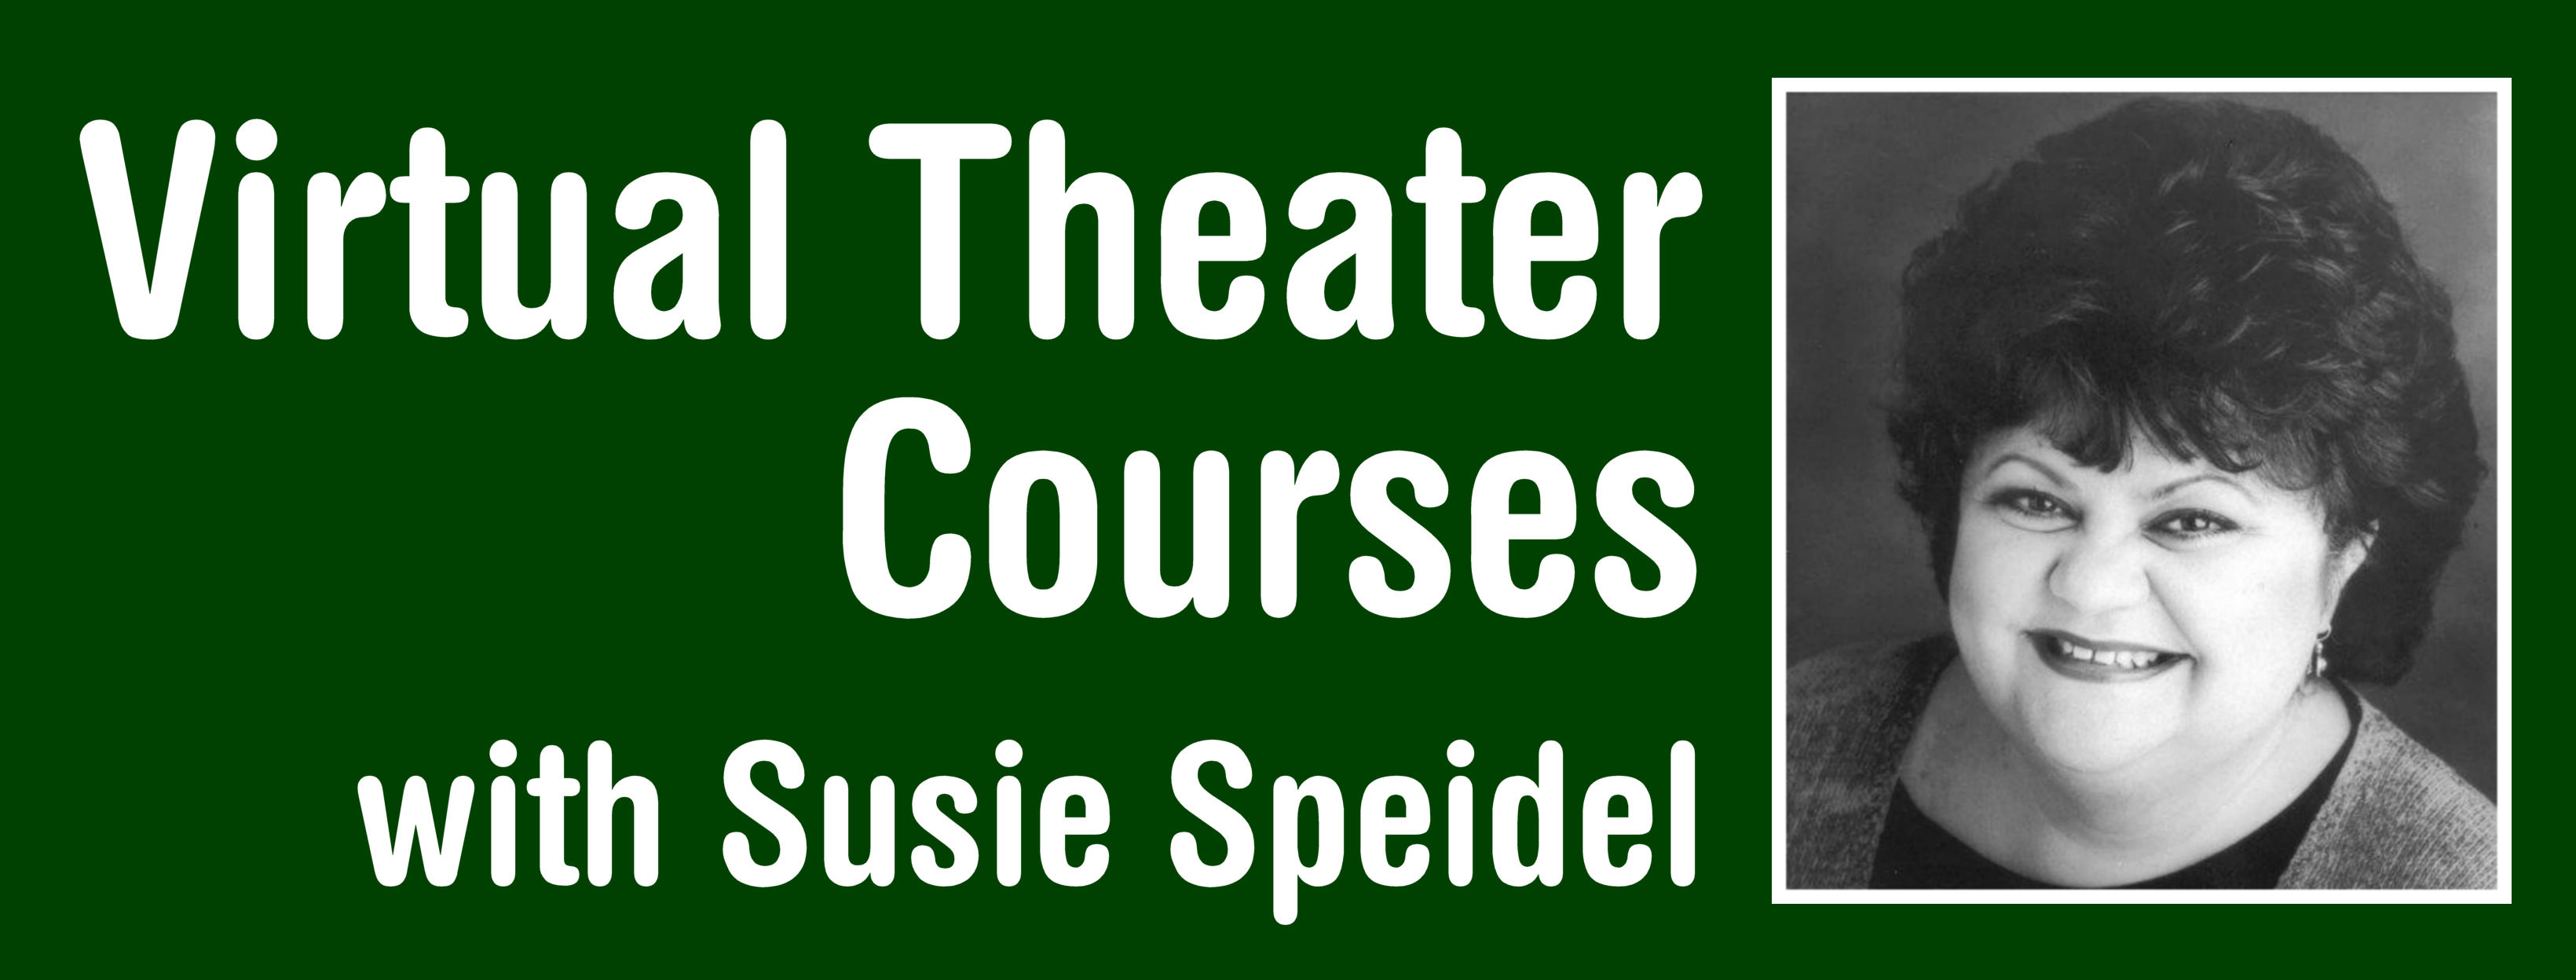 Virtual Theater Courses with Susie Speidel